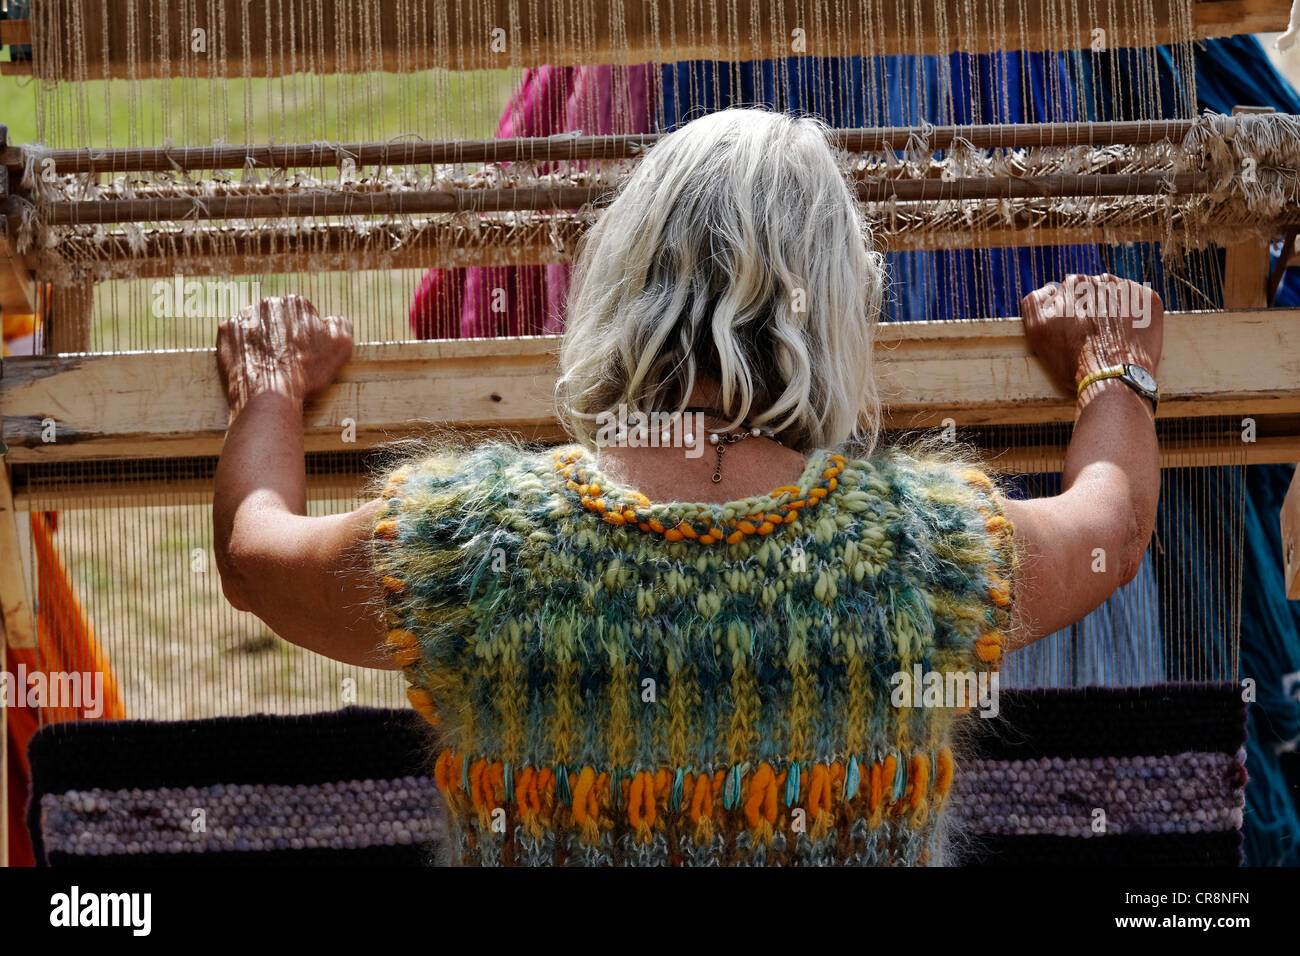 Woman working on a wooden hand loom, Flachsmarkt historical crafts market, Krefeld-Linn, North Rhine-Westphalia, - Stock Image